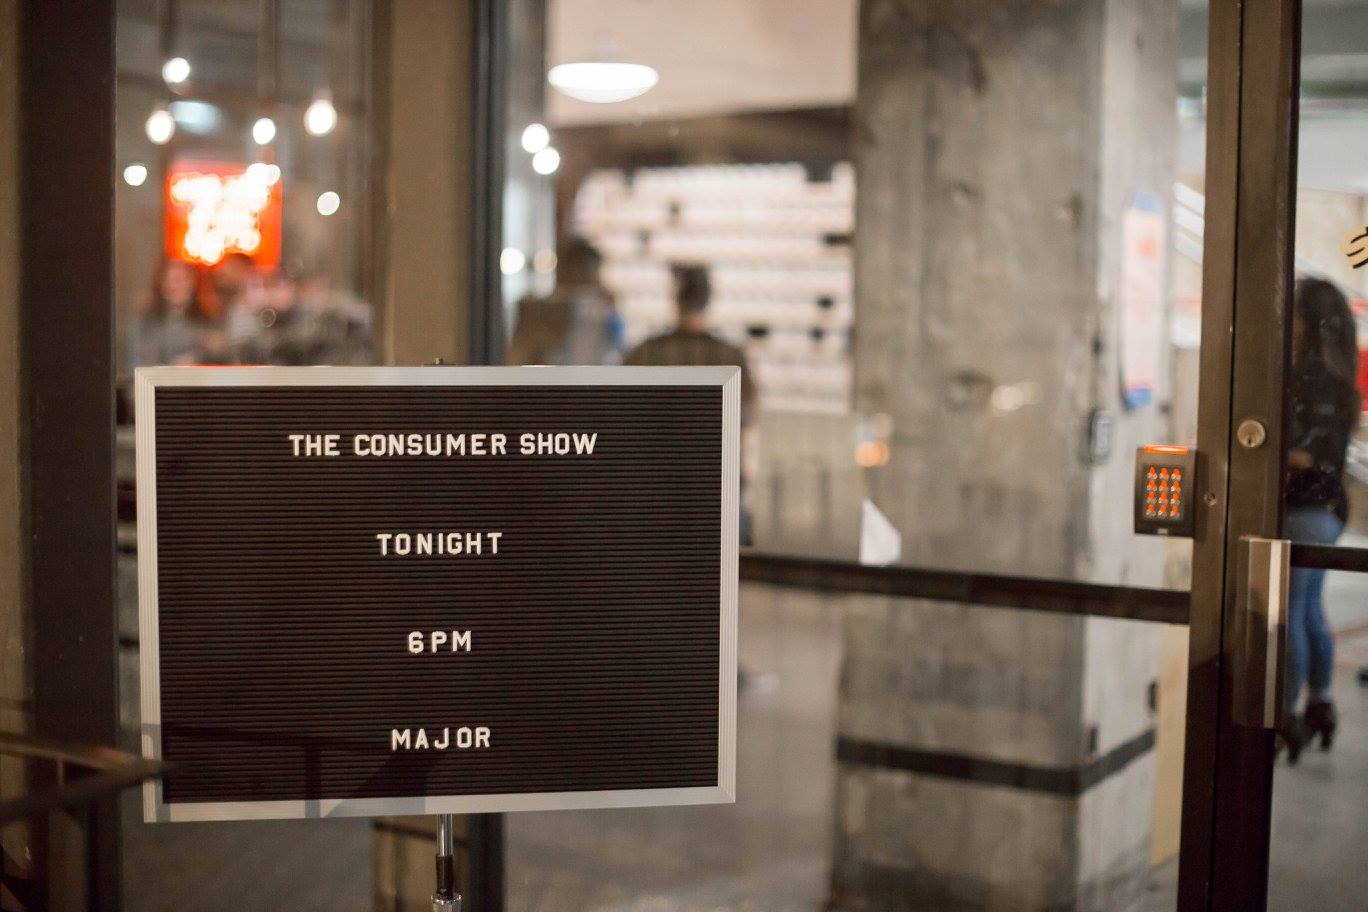 The Consumer Show .  Always a major event, always the first Thursday of the month.PHOTO:   Bhargava Chiluveru  of   Chil Creative